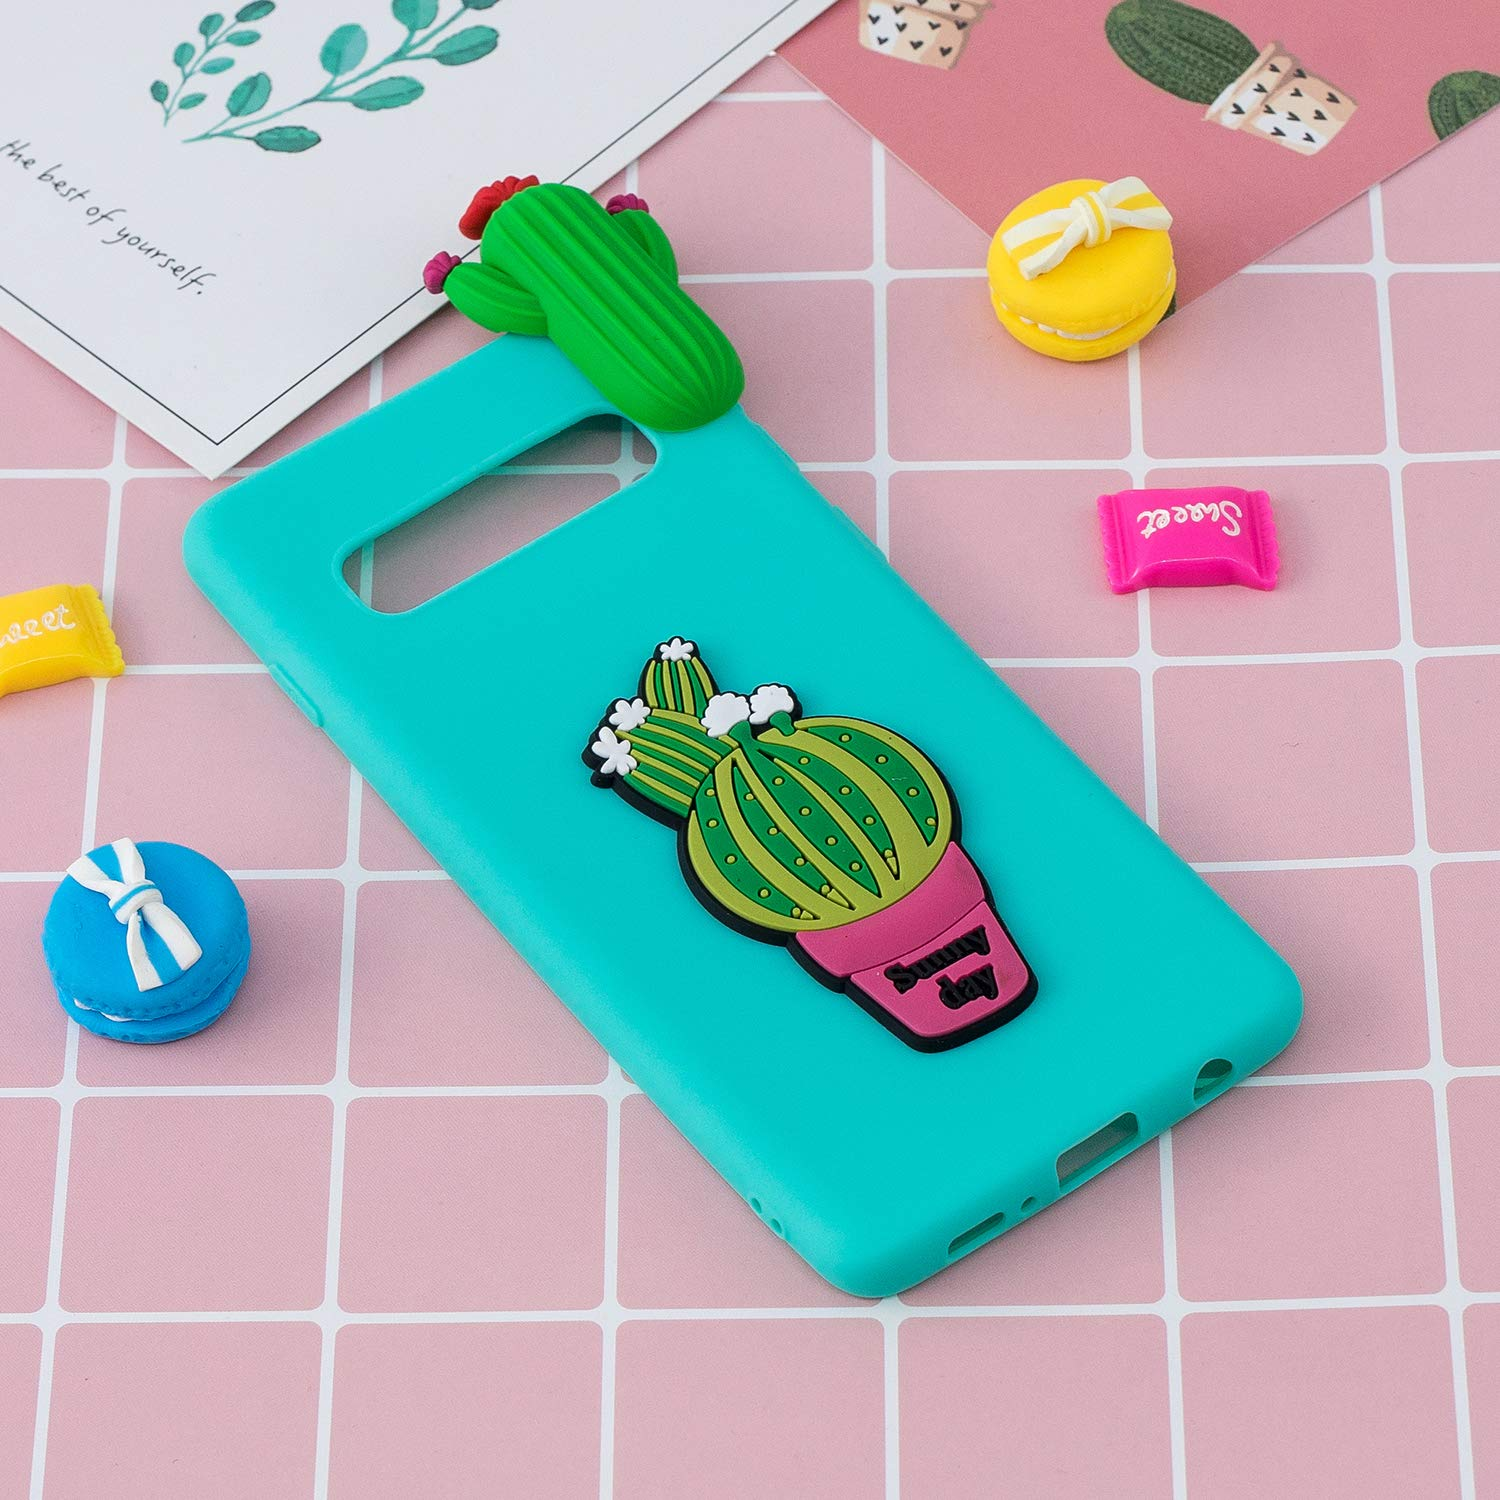 TPU Case for Samsung Galaxy S10,Moiky Funny 3D Cactus Design Ultra Thin Soft Silicone Resistant Back Cover Phone Case Unique Style Protect Case by MOIKY (Image #6)